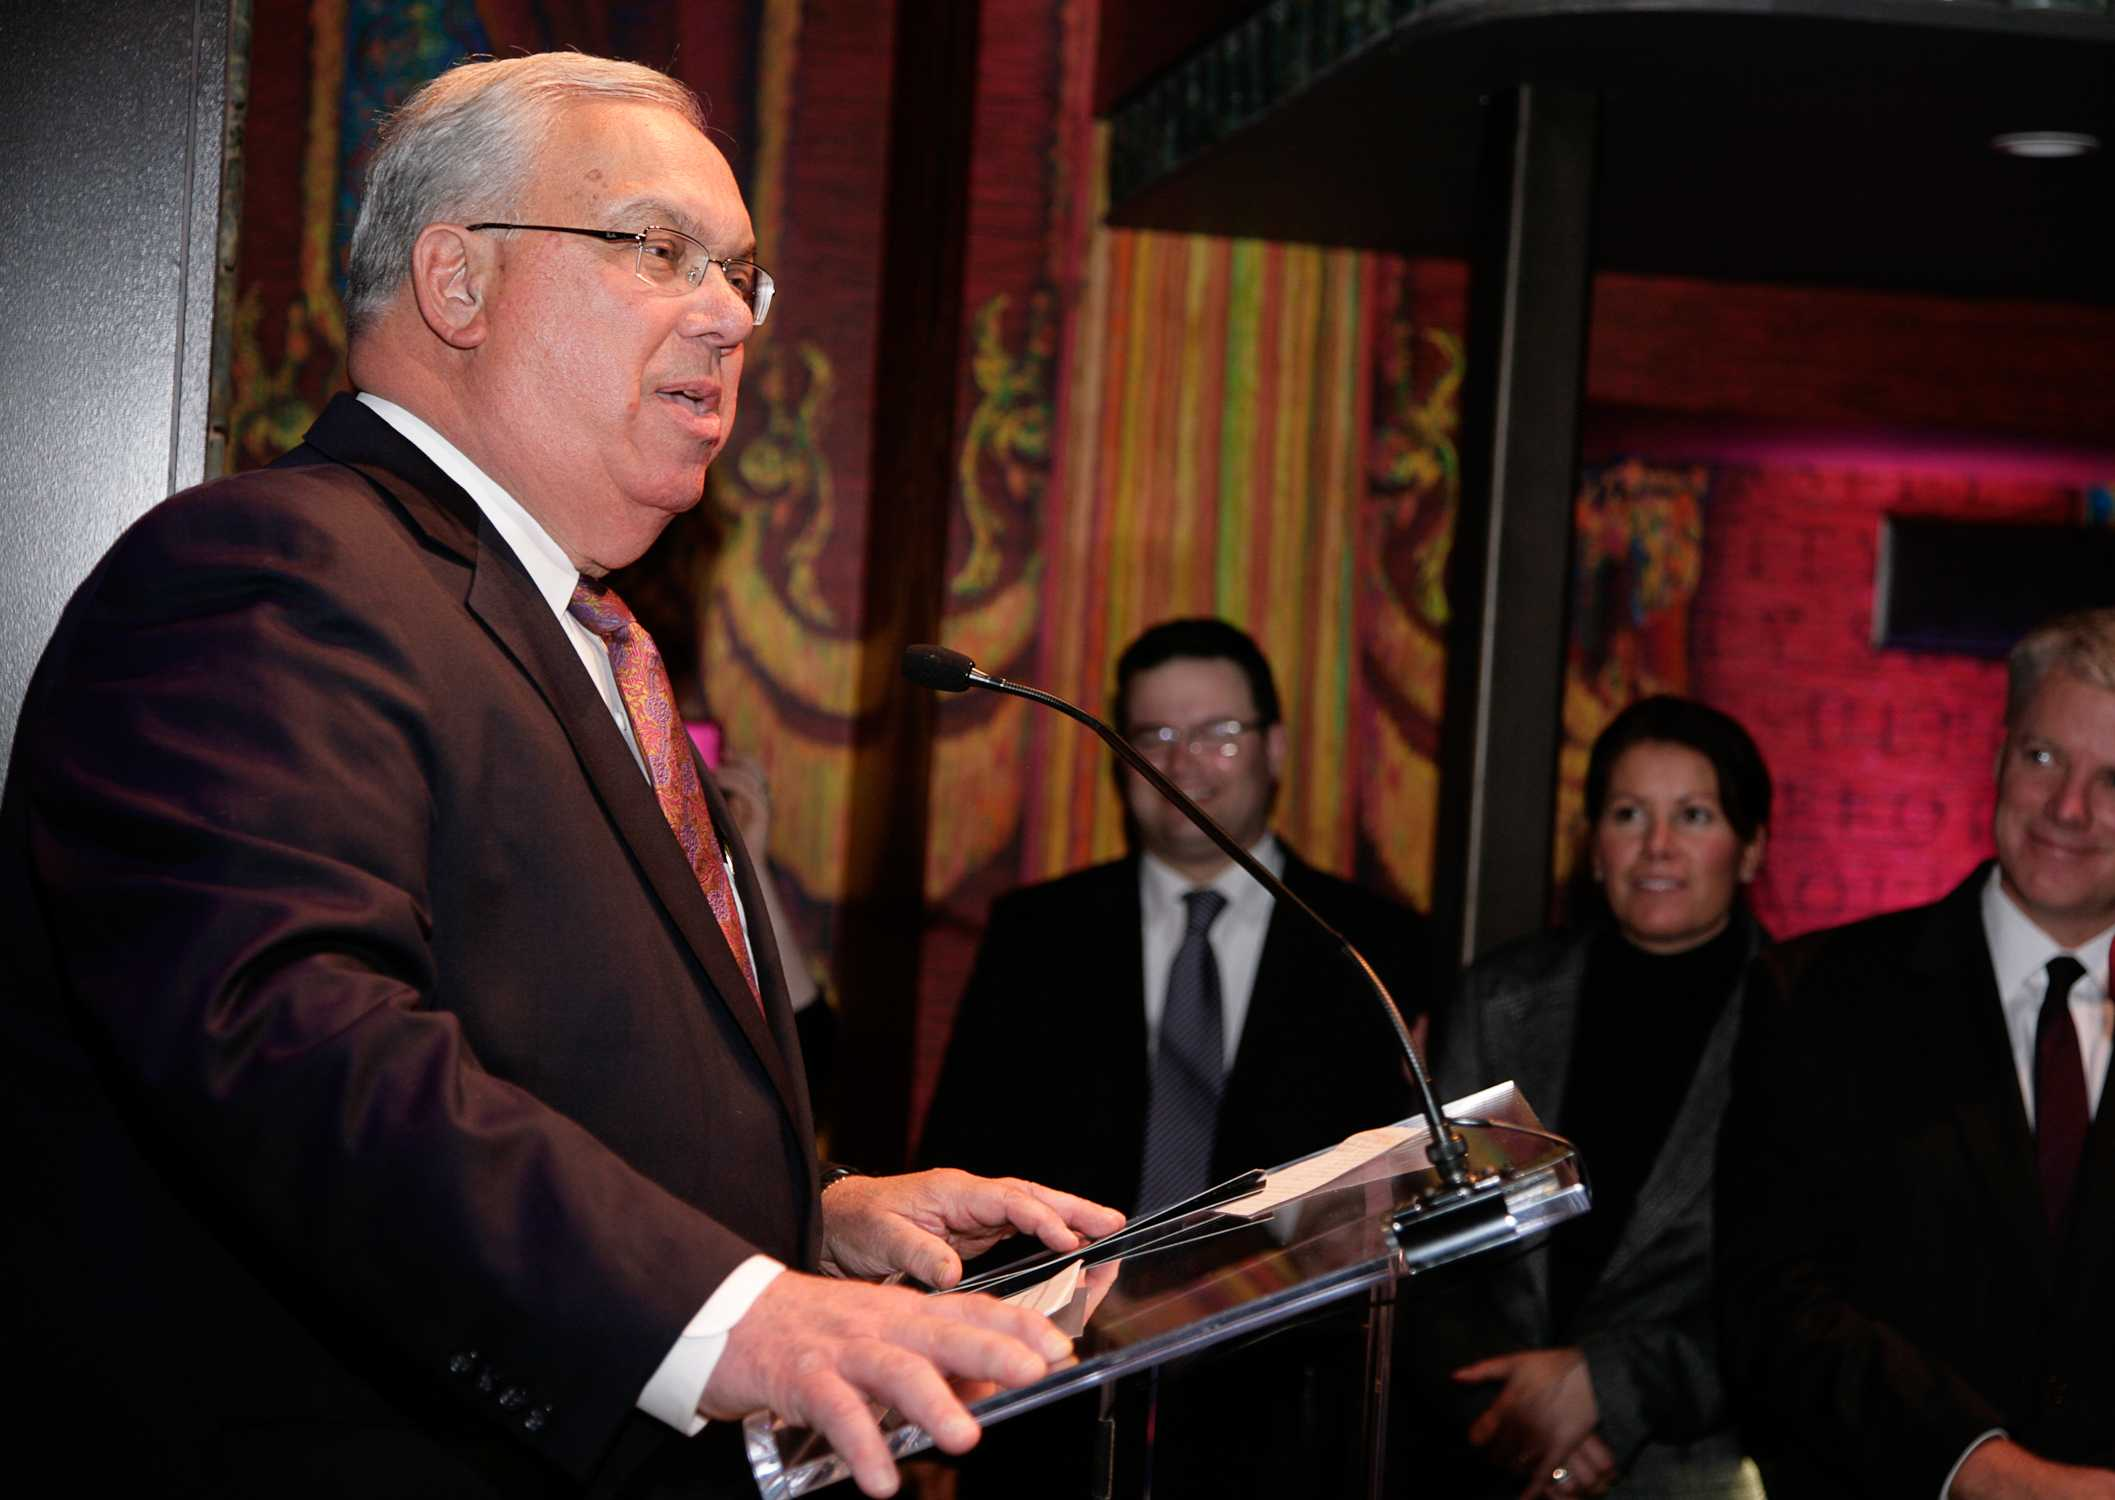 Menino speaking at the Modern Theatre in 2010